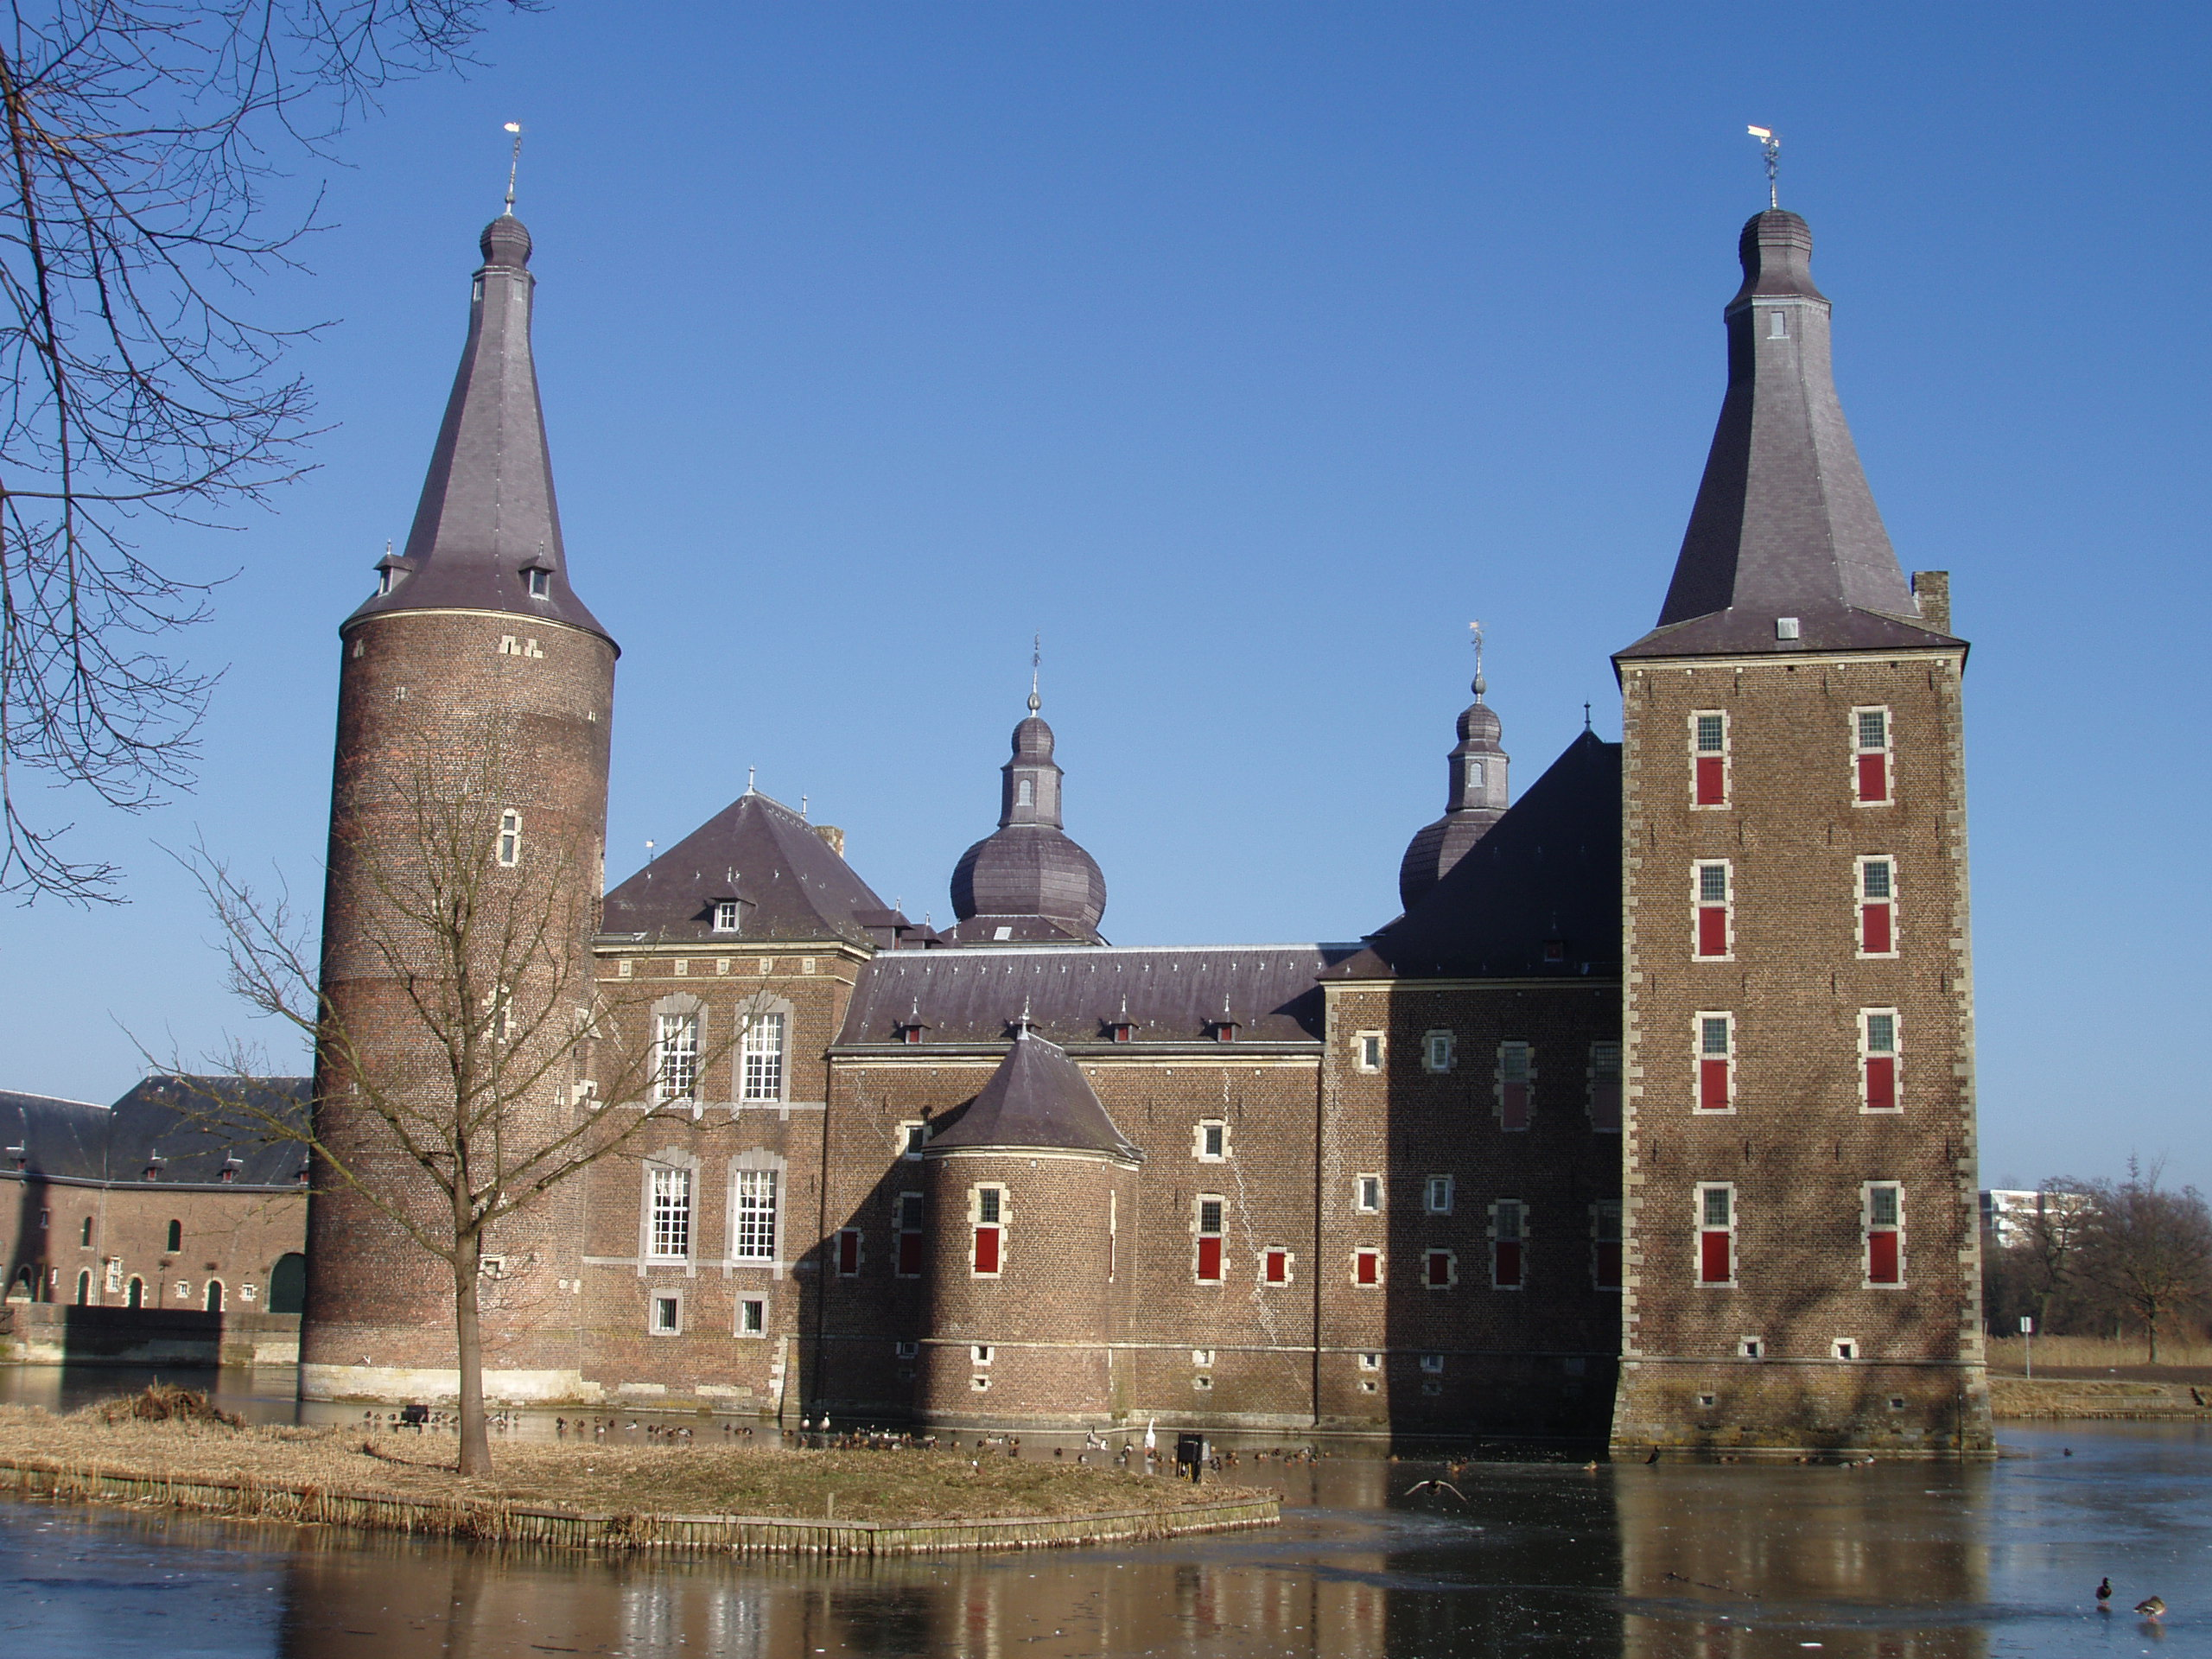 File:Heerlen-Kasteel Hoensbroek-1.JPG - Wikipedia, the free ...